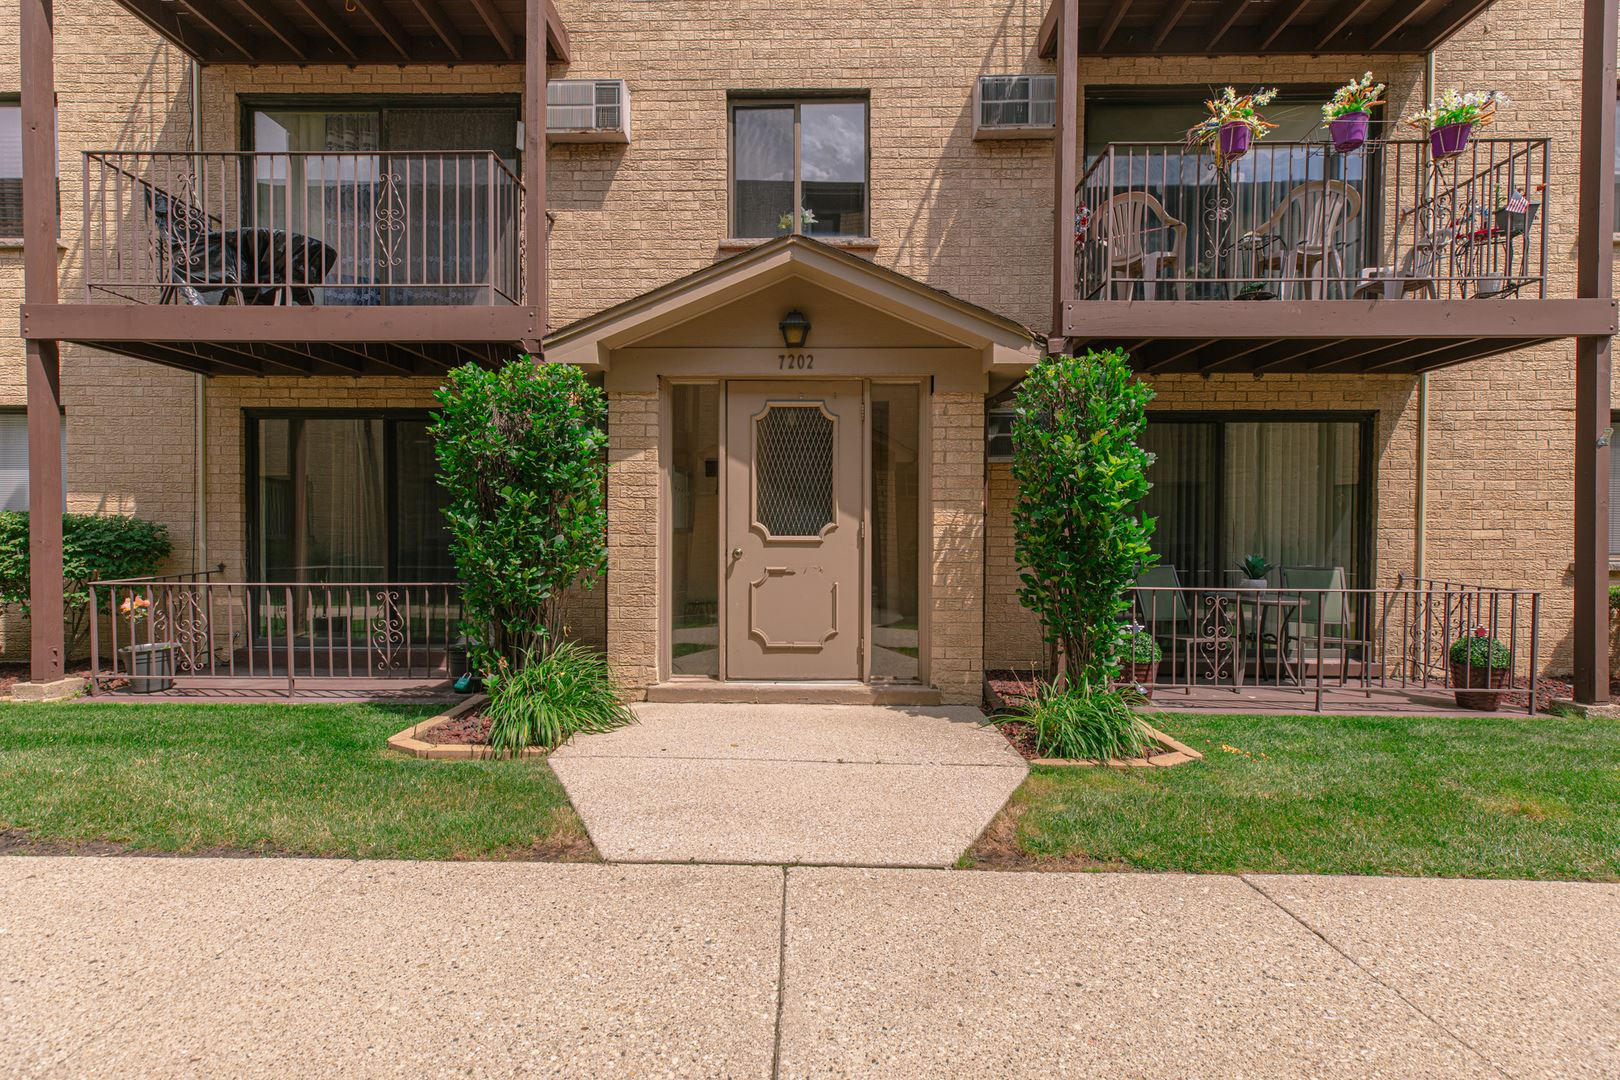 7202 W WRIGHTWOOD Avenue #3S, Elmwood Park, IL 60707 - #: 10764281